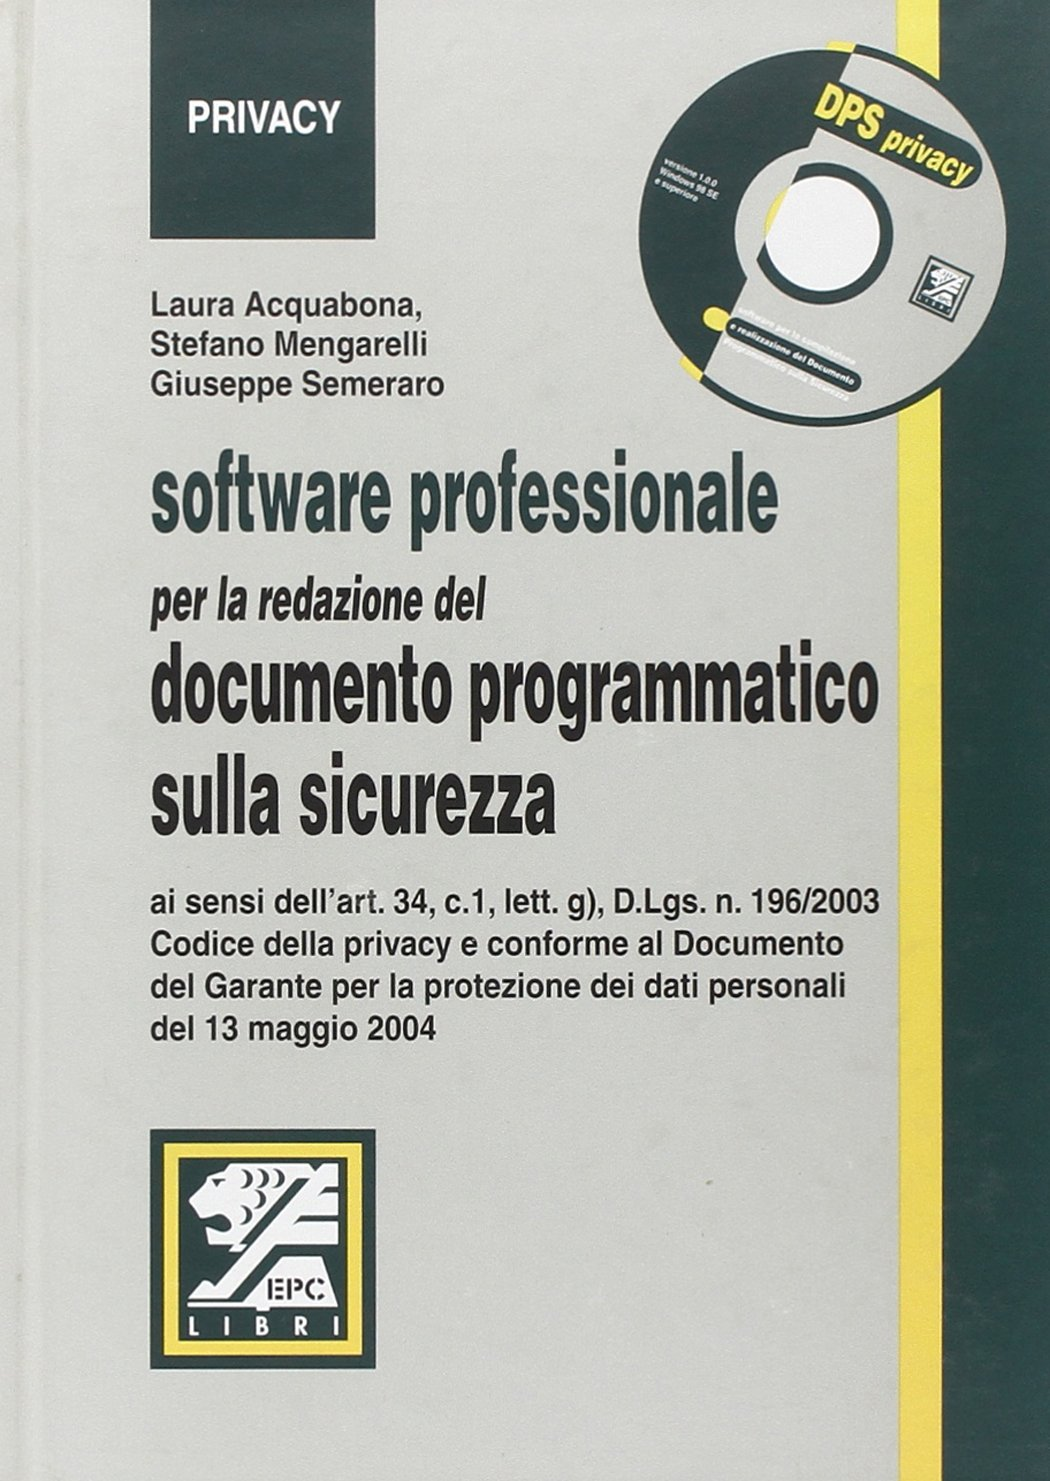 software documento programmatico sicurezza